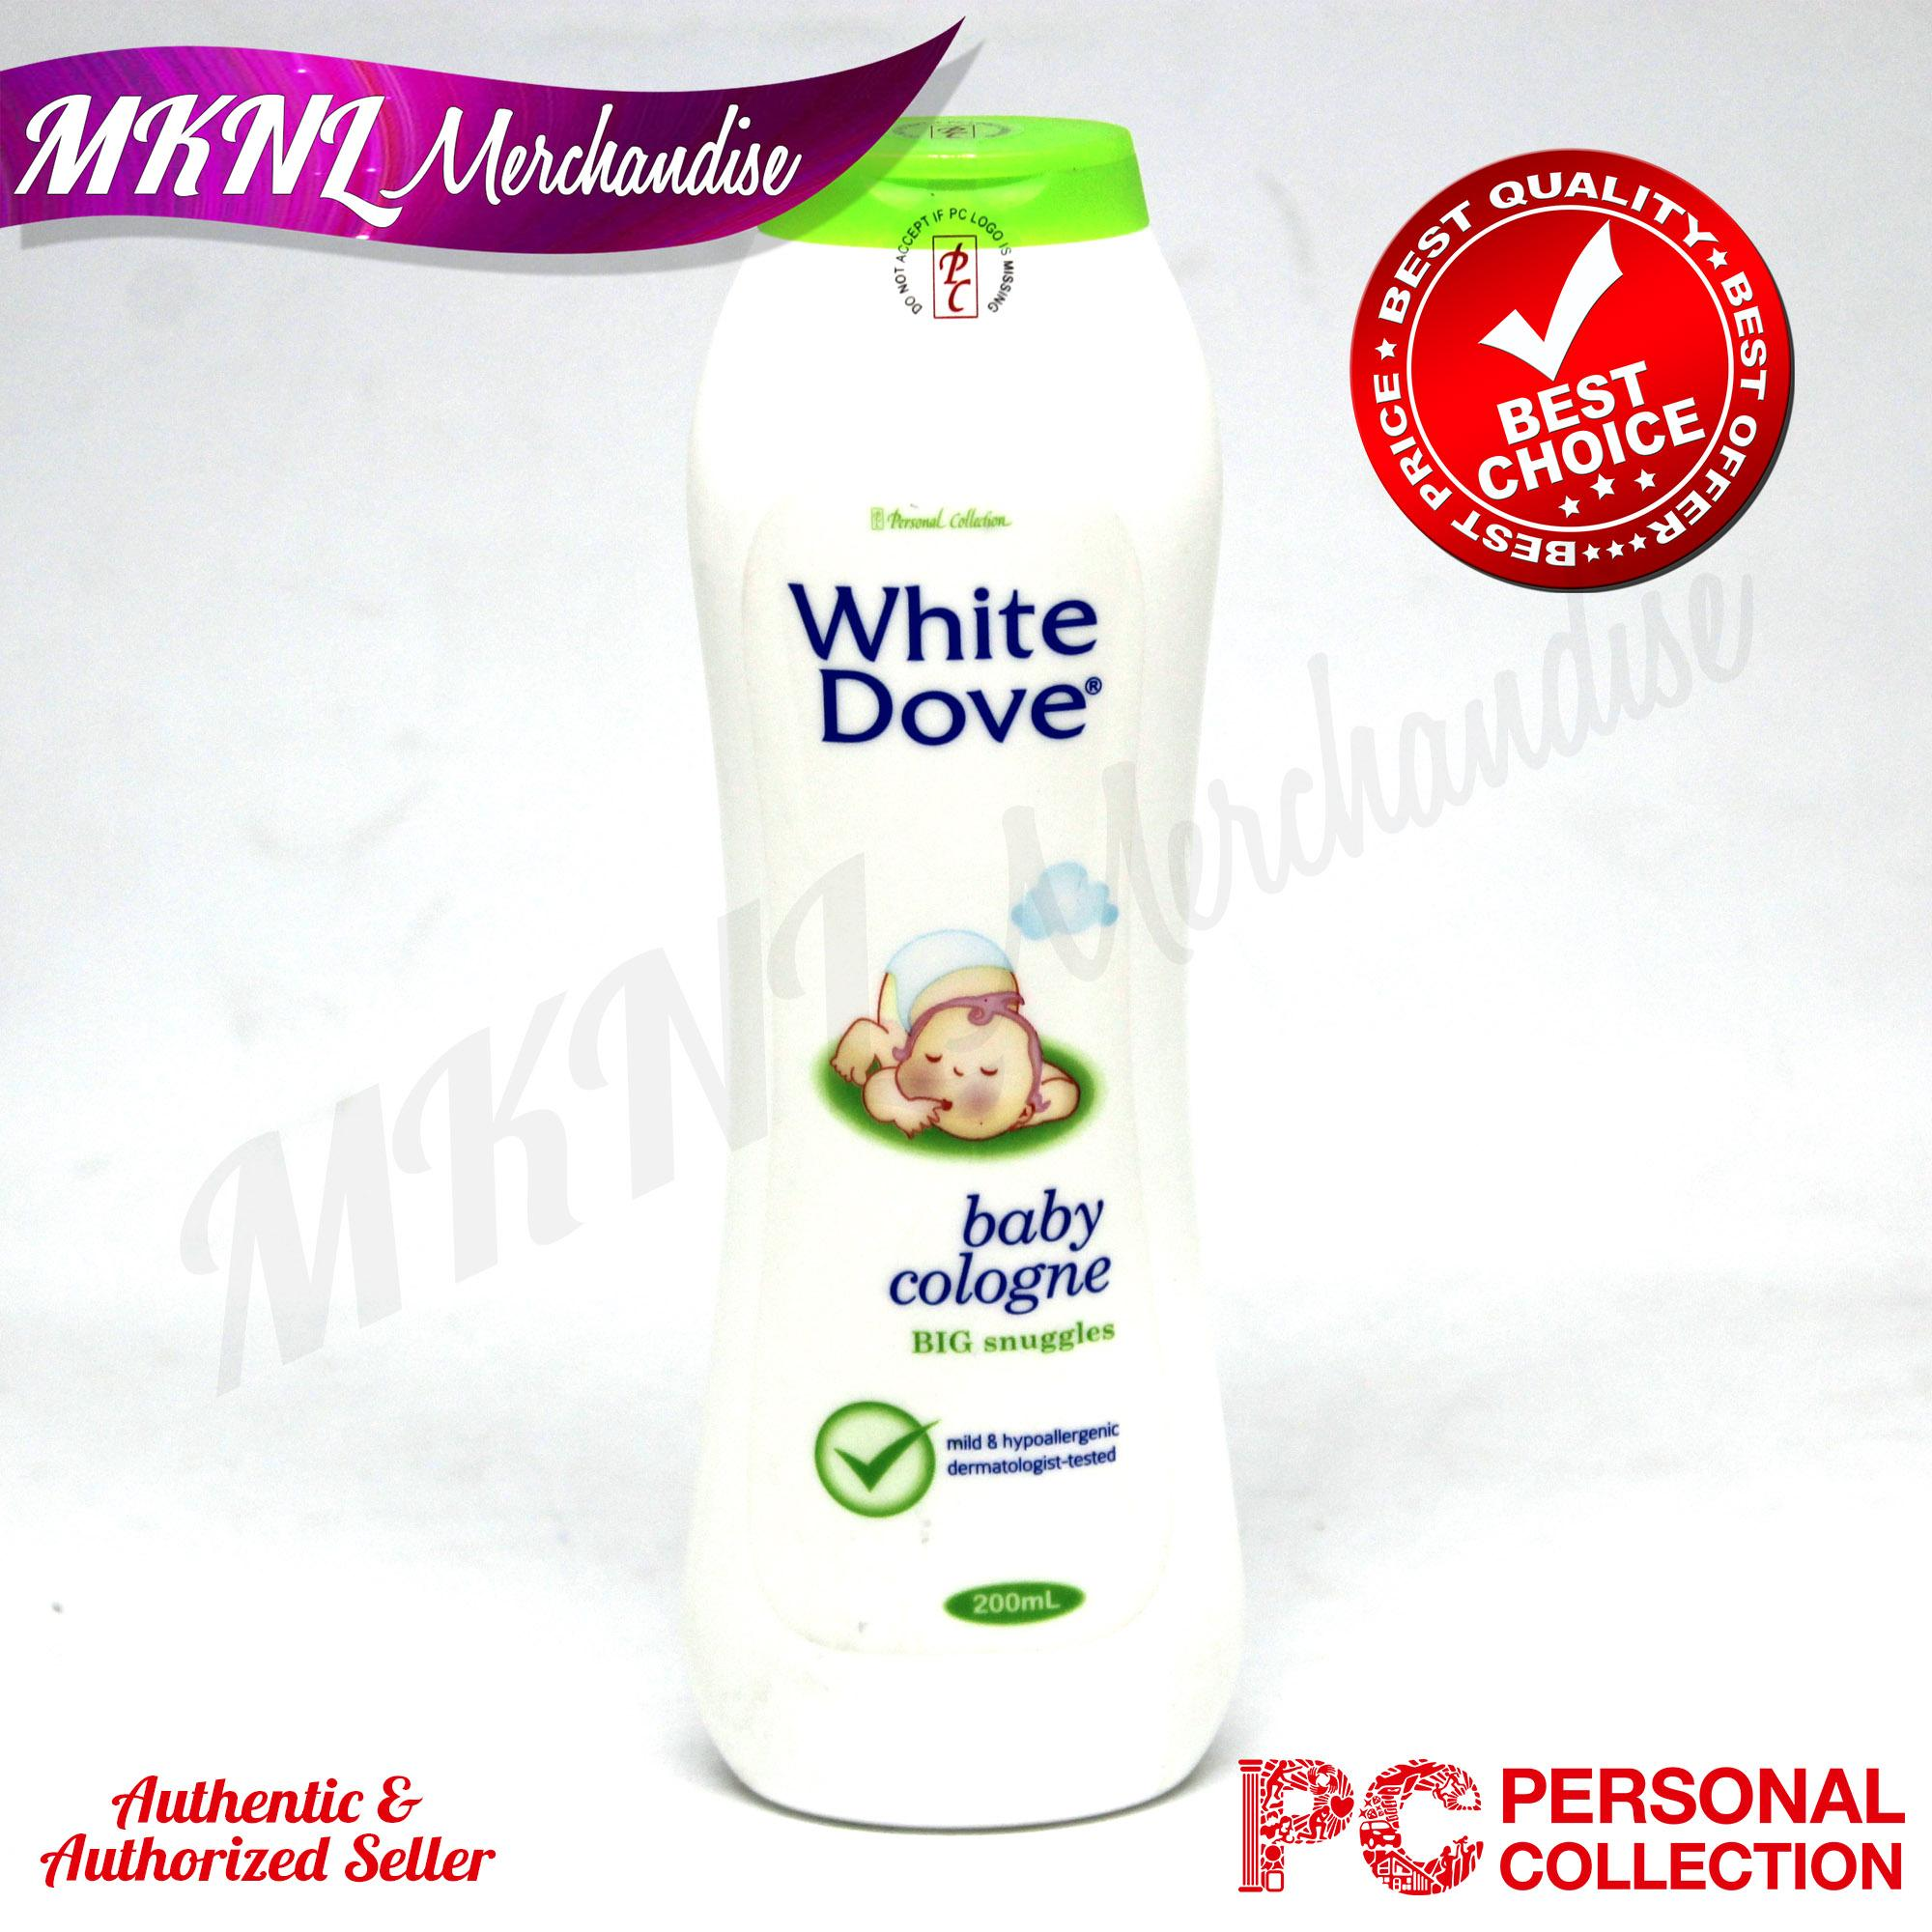 White Dove Baby Cologne Big Snuggles (200ml) By Mknl Merchandise.